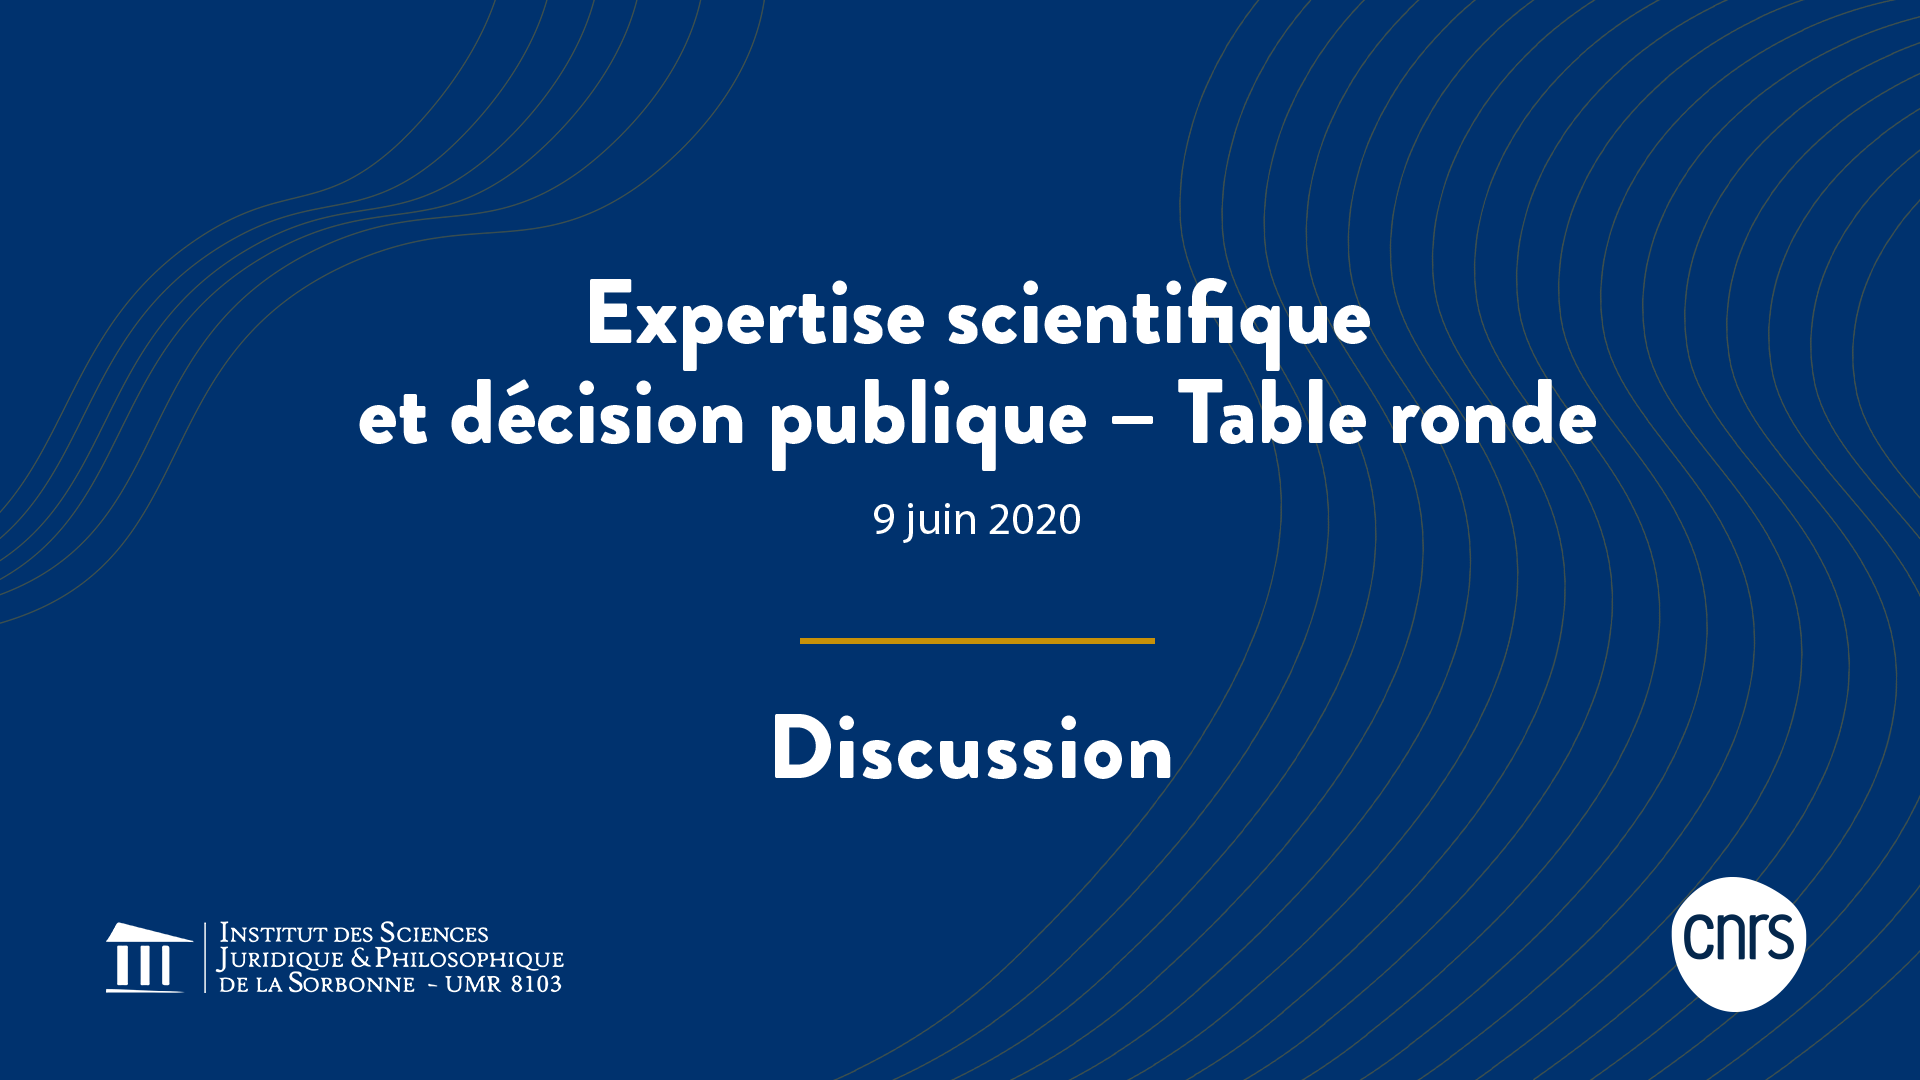 Expertise scientifique et décision publique – Discussion